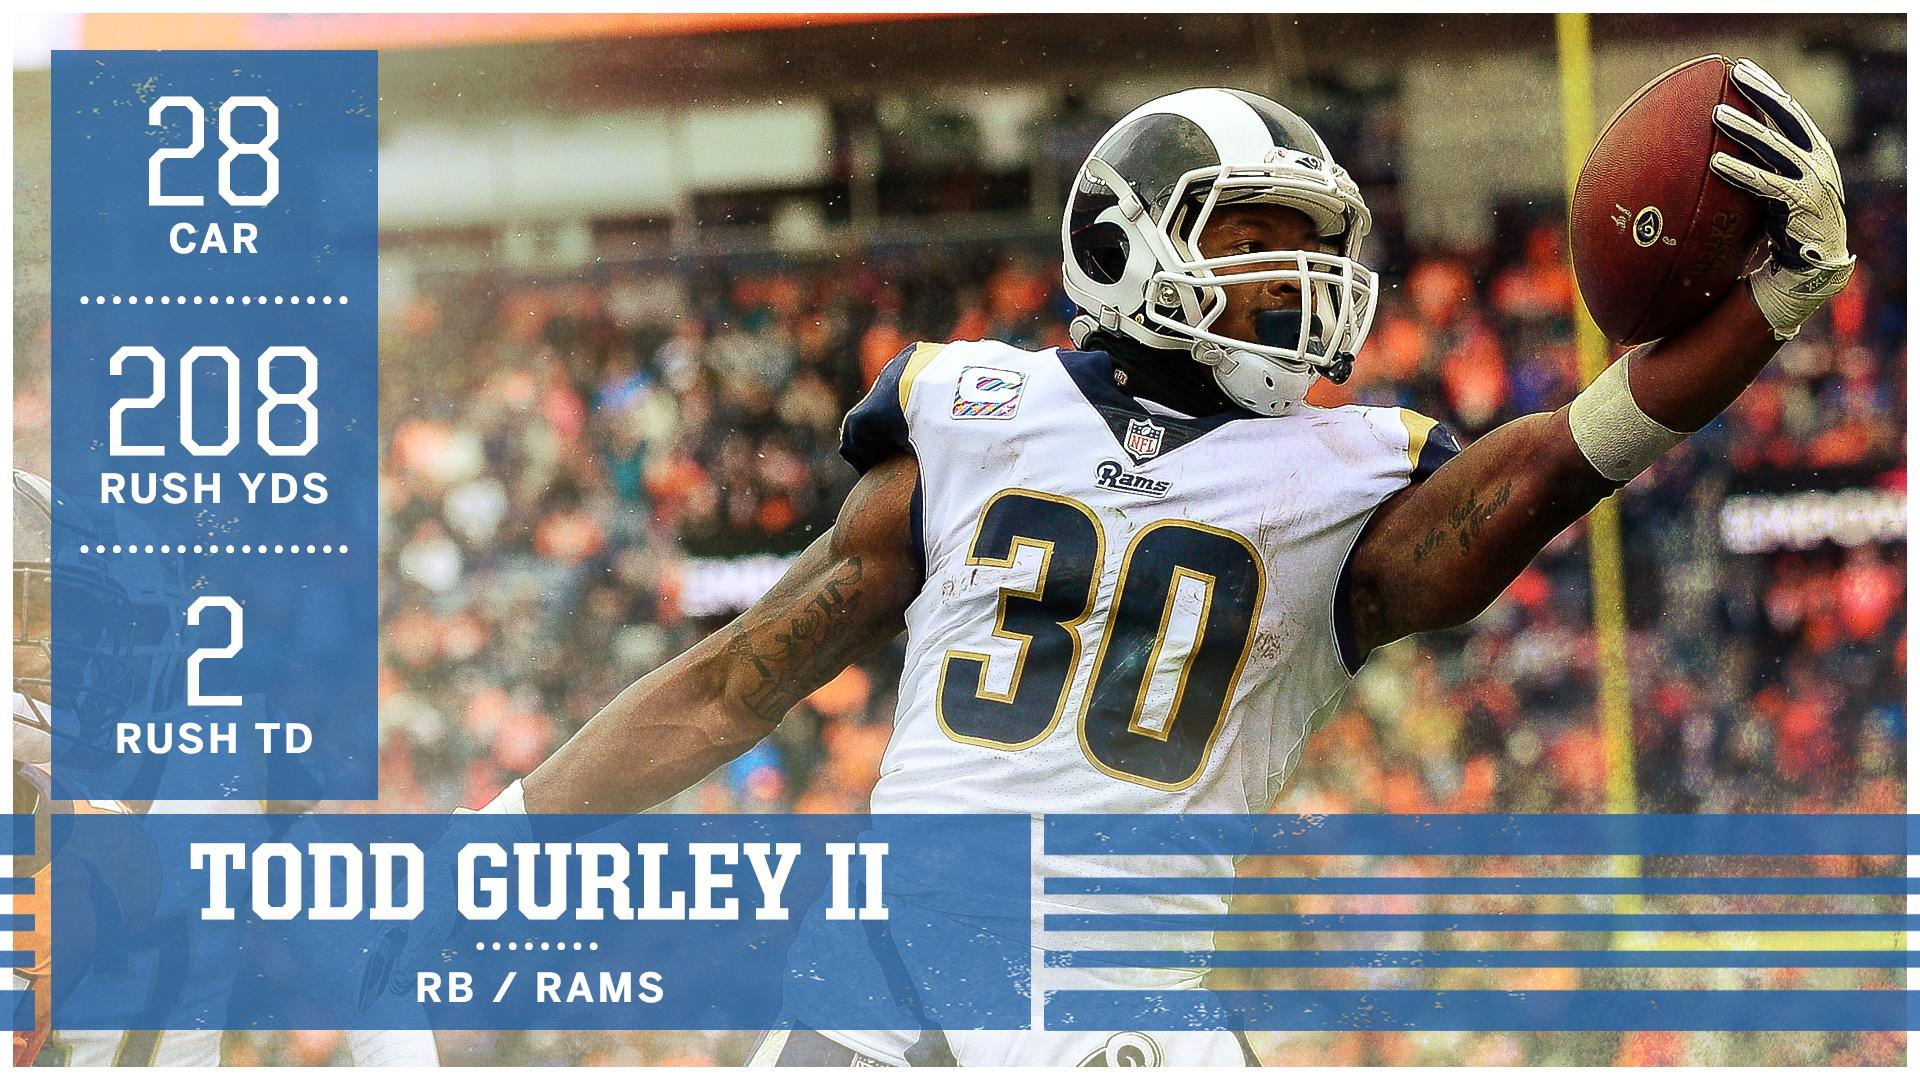 HAVE A GAME, @TG3II!  Gurley is the first Rams player to rush for 200 yards since Marshall Faulk (2001). https://t.co/ncVIE8tvQm